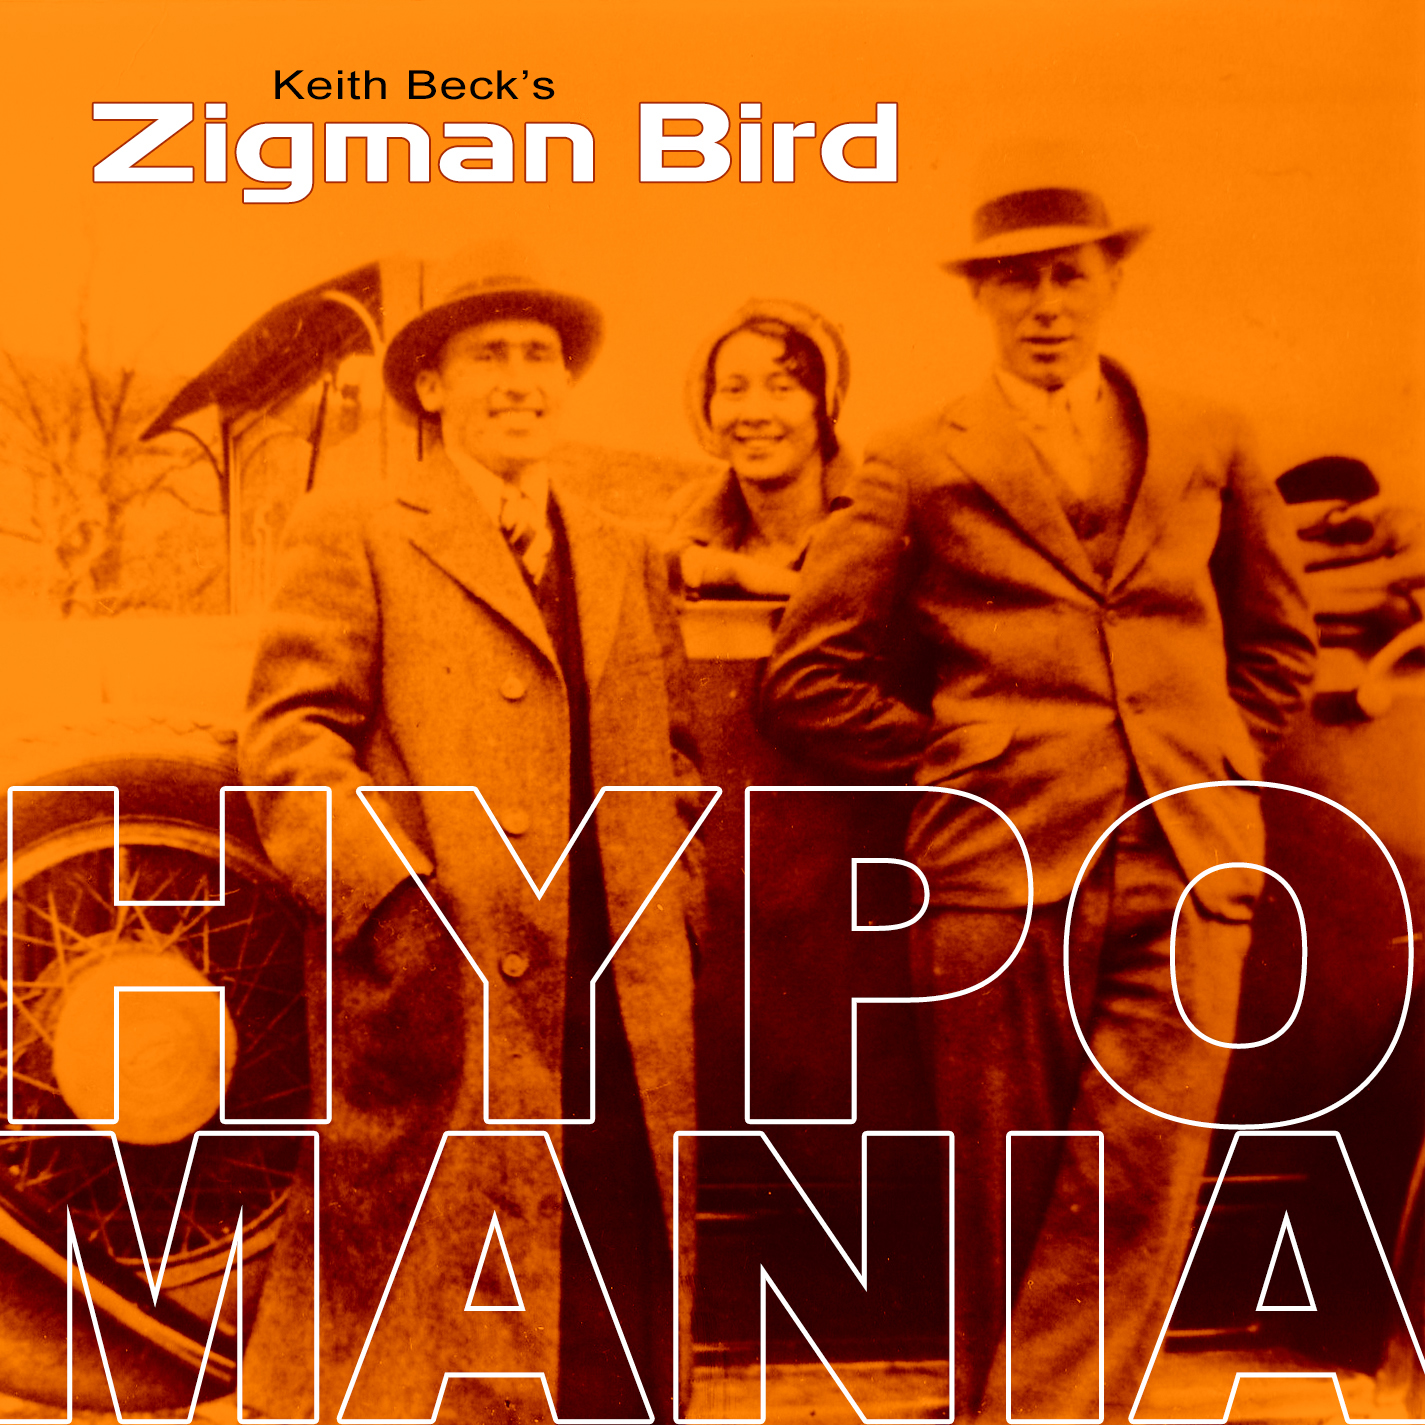 Keith Beck's Zigman Bird's Hypomania